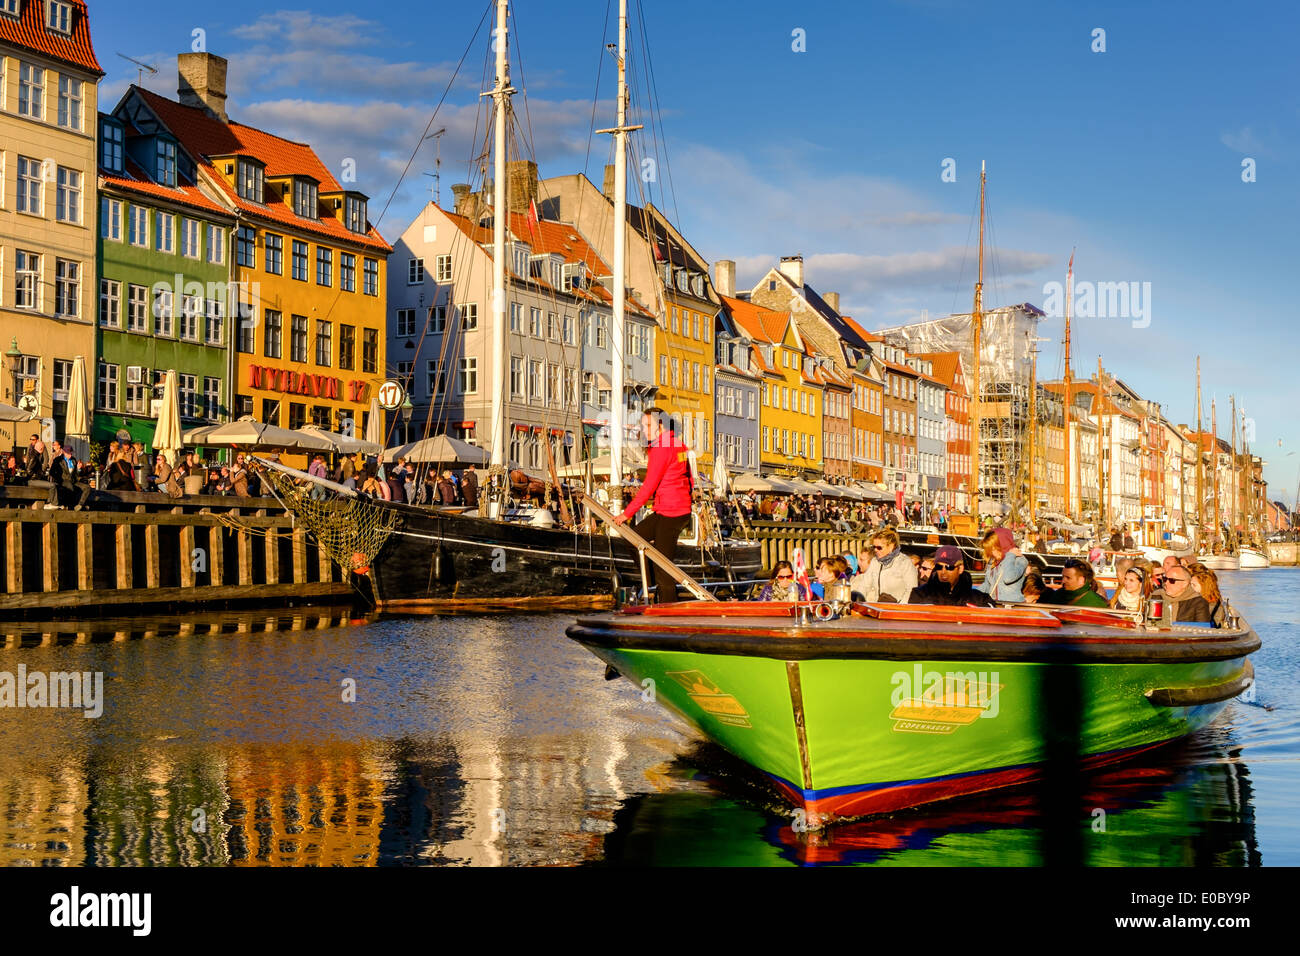 Excursion boat, Nyhavn canal, Copenhagen,  Denmark - Stock Image